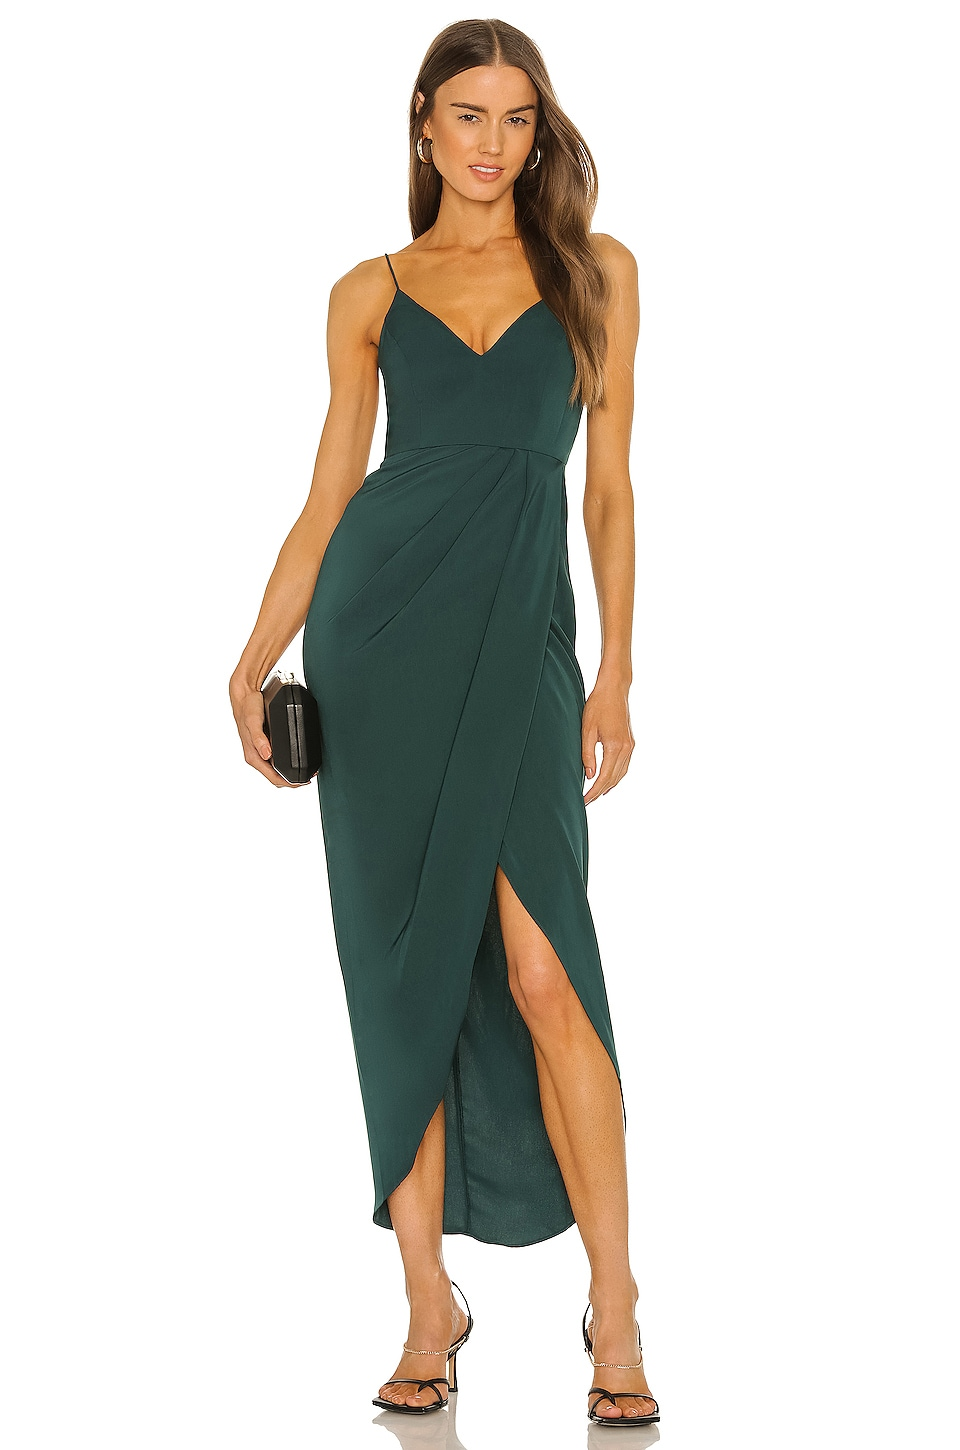 Shona Joy Stellar Drape Maxi Dress Shopyourway